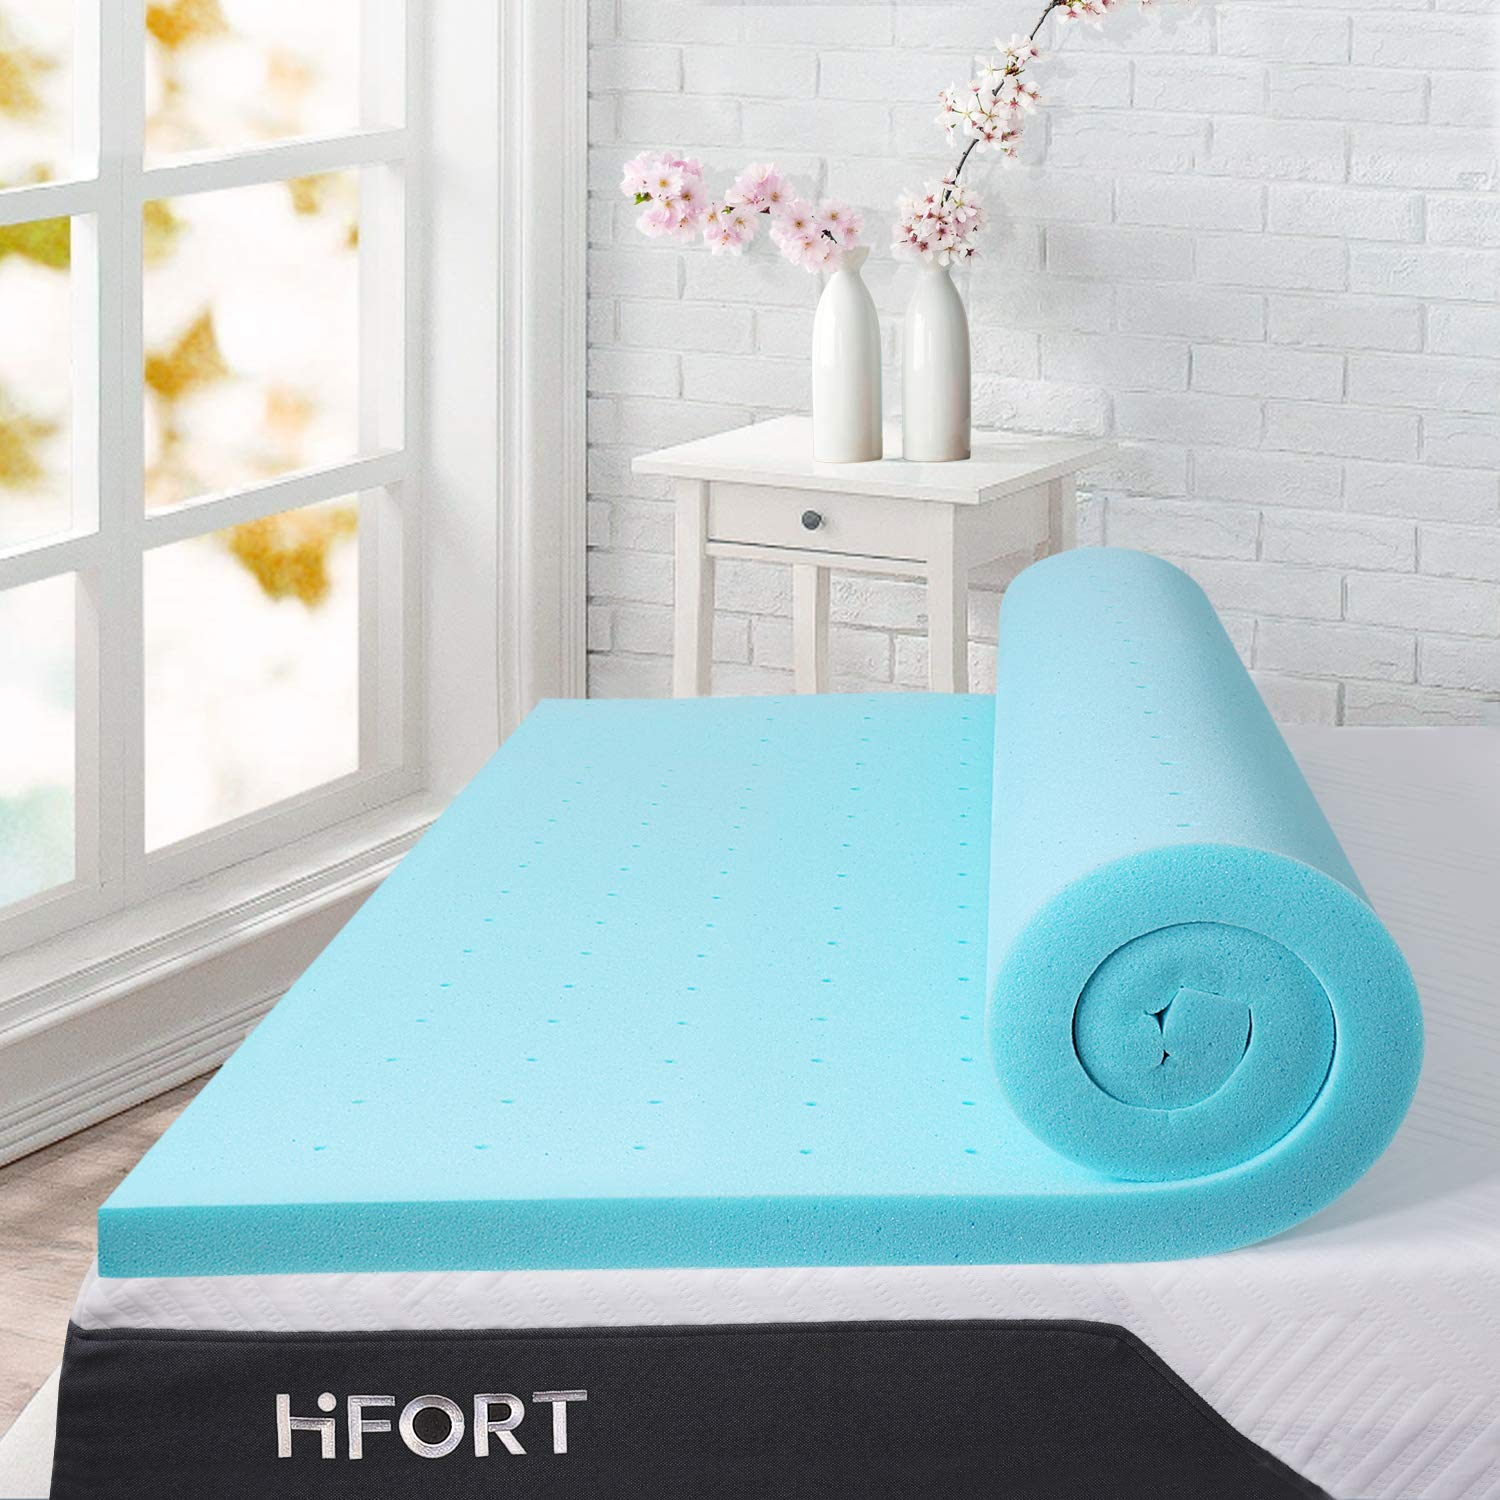 HIFORT Memory Foam Topper Twin 2 Inch, Ventilated Gel Mattress Pad Single Bed Topper